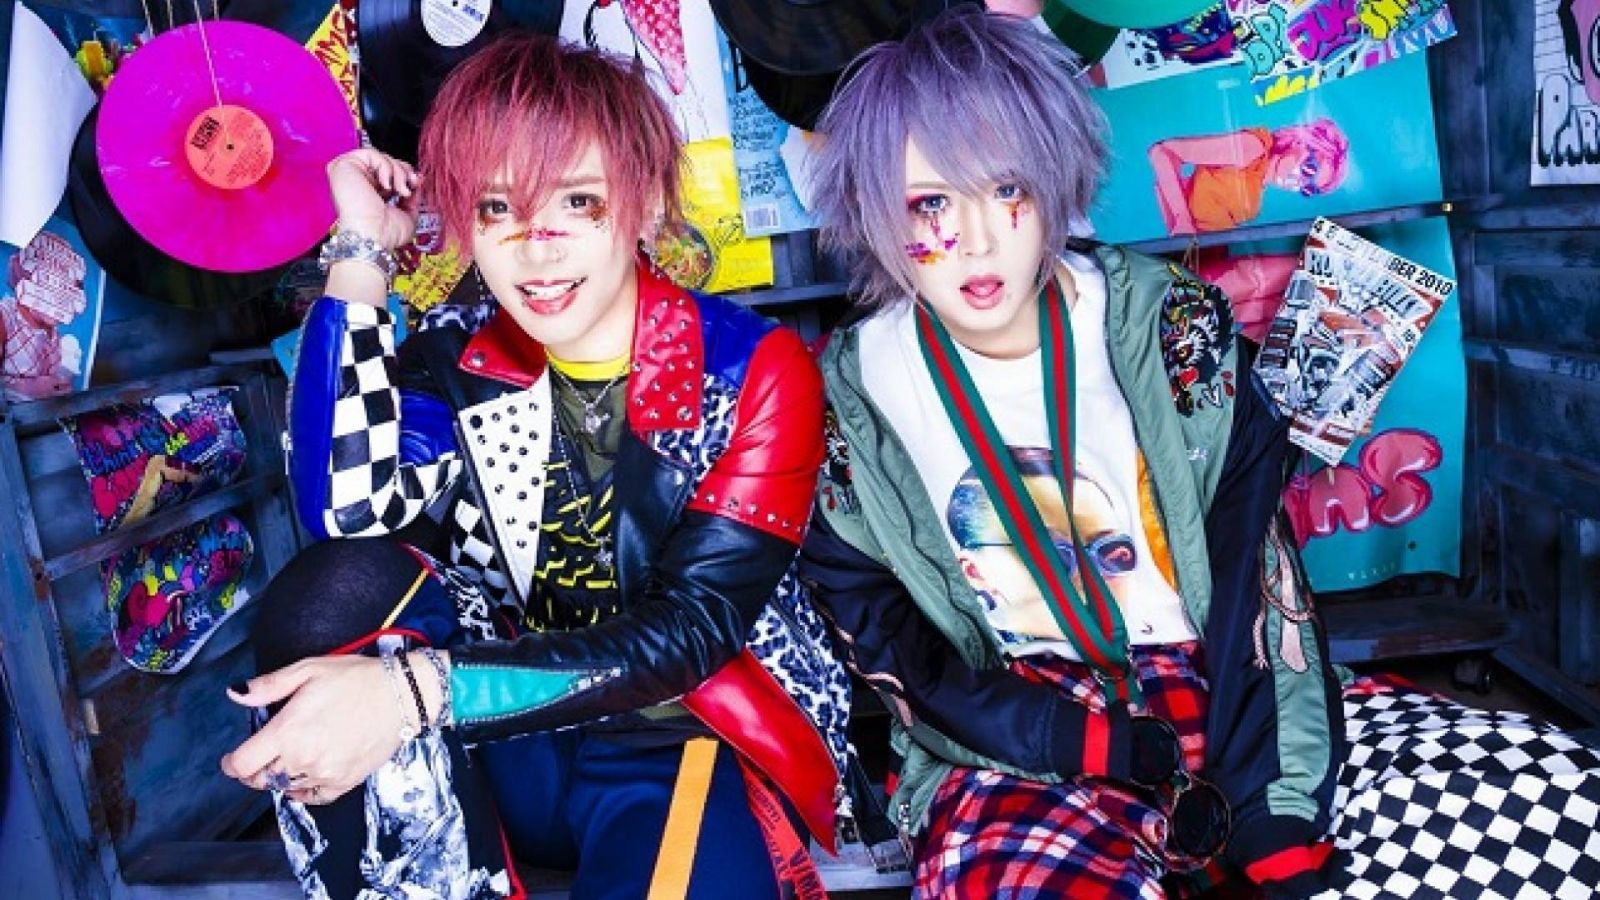 FEST VAINQUEUR and LEZARD Members Form New Visual Kei Duo © 2018 Sirene Co. All rights reserved.